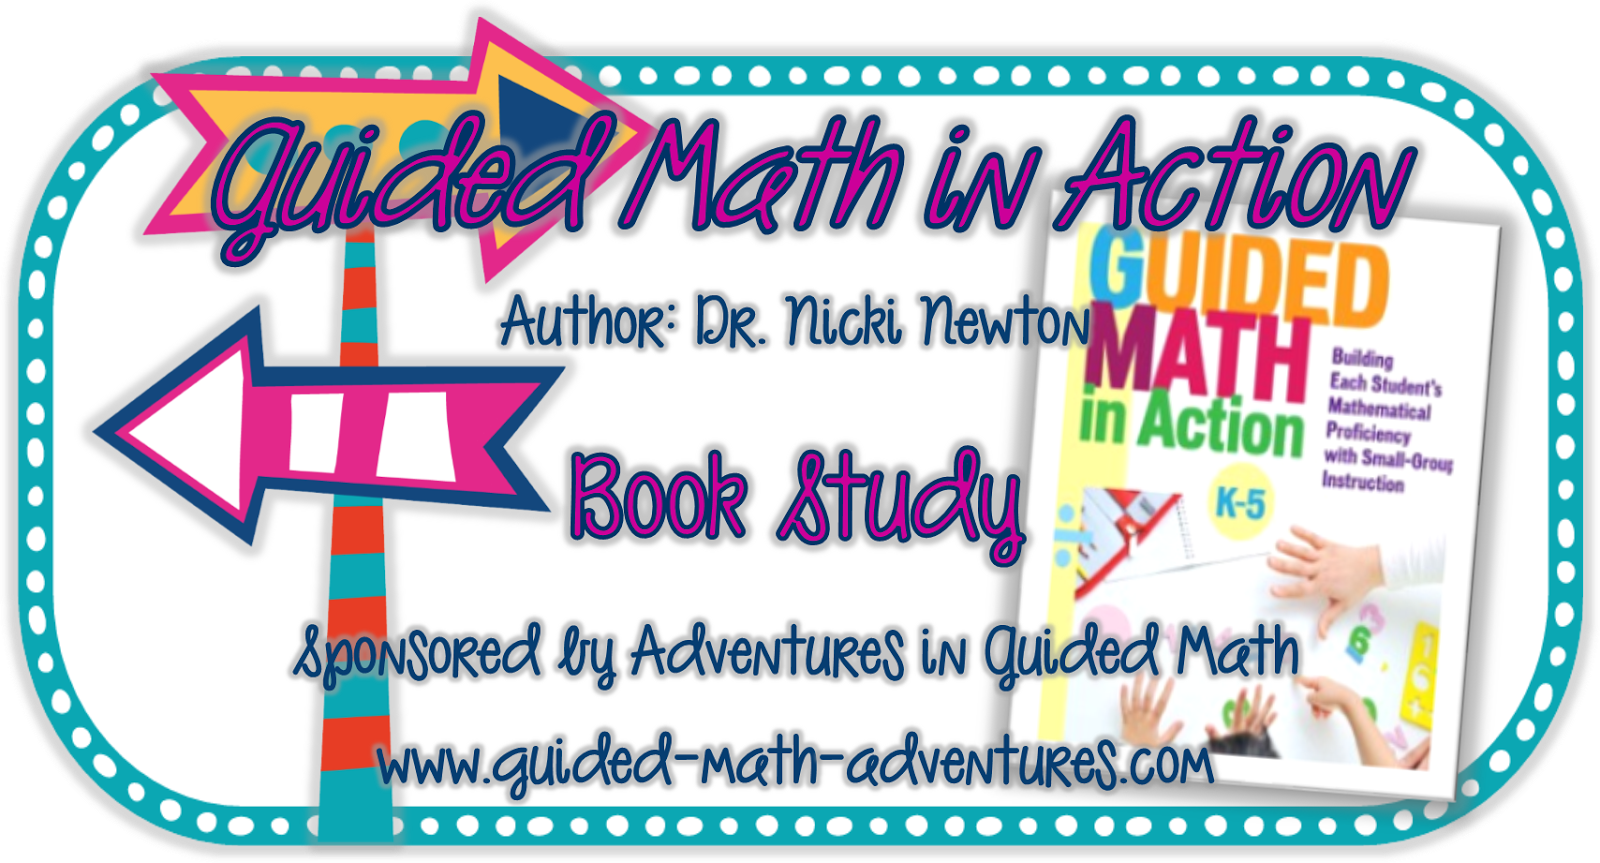 http://www.guided-math-adventures.com/2014/07/guided-math-in-action-book-study-kick.html